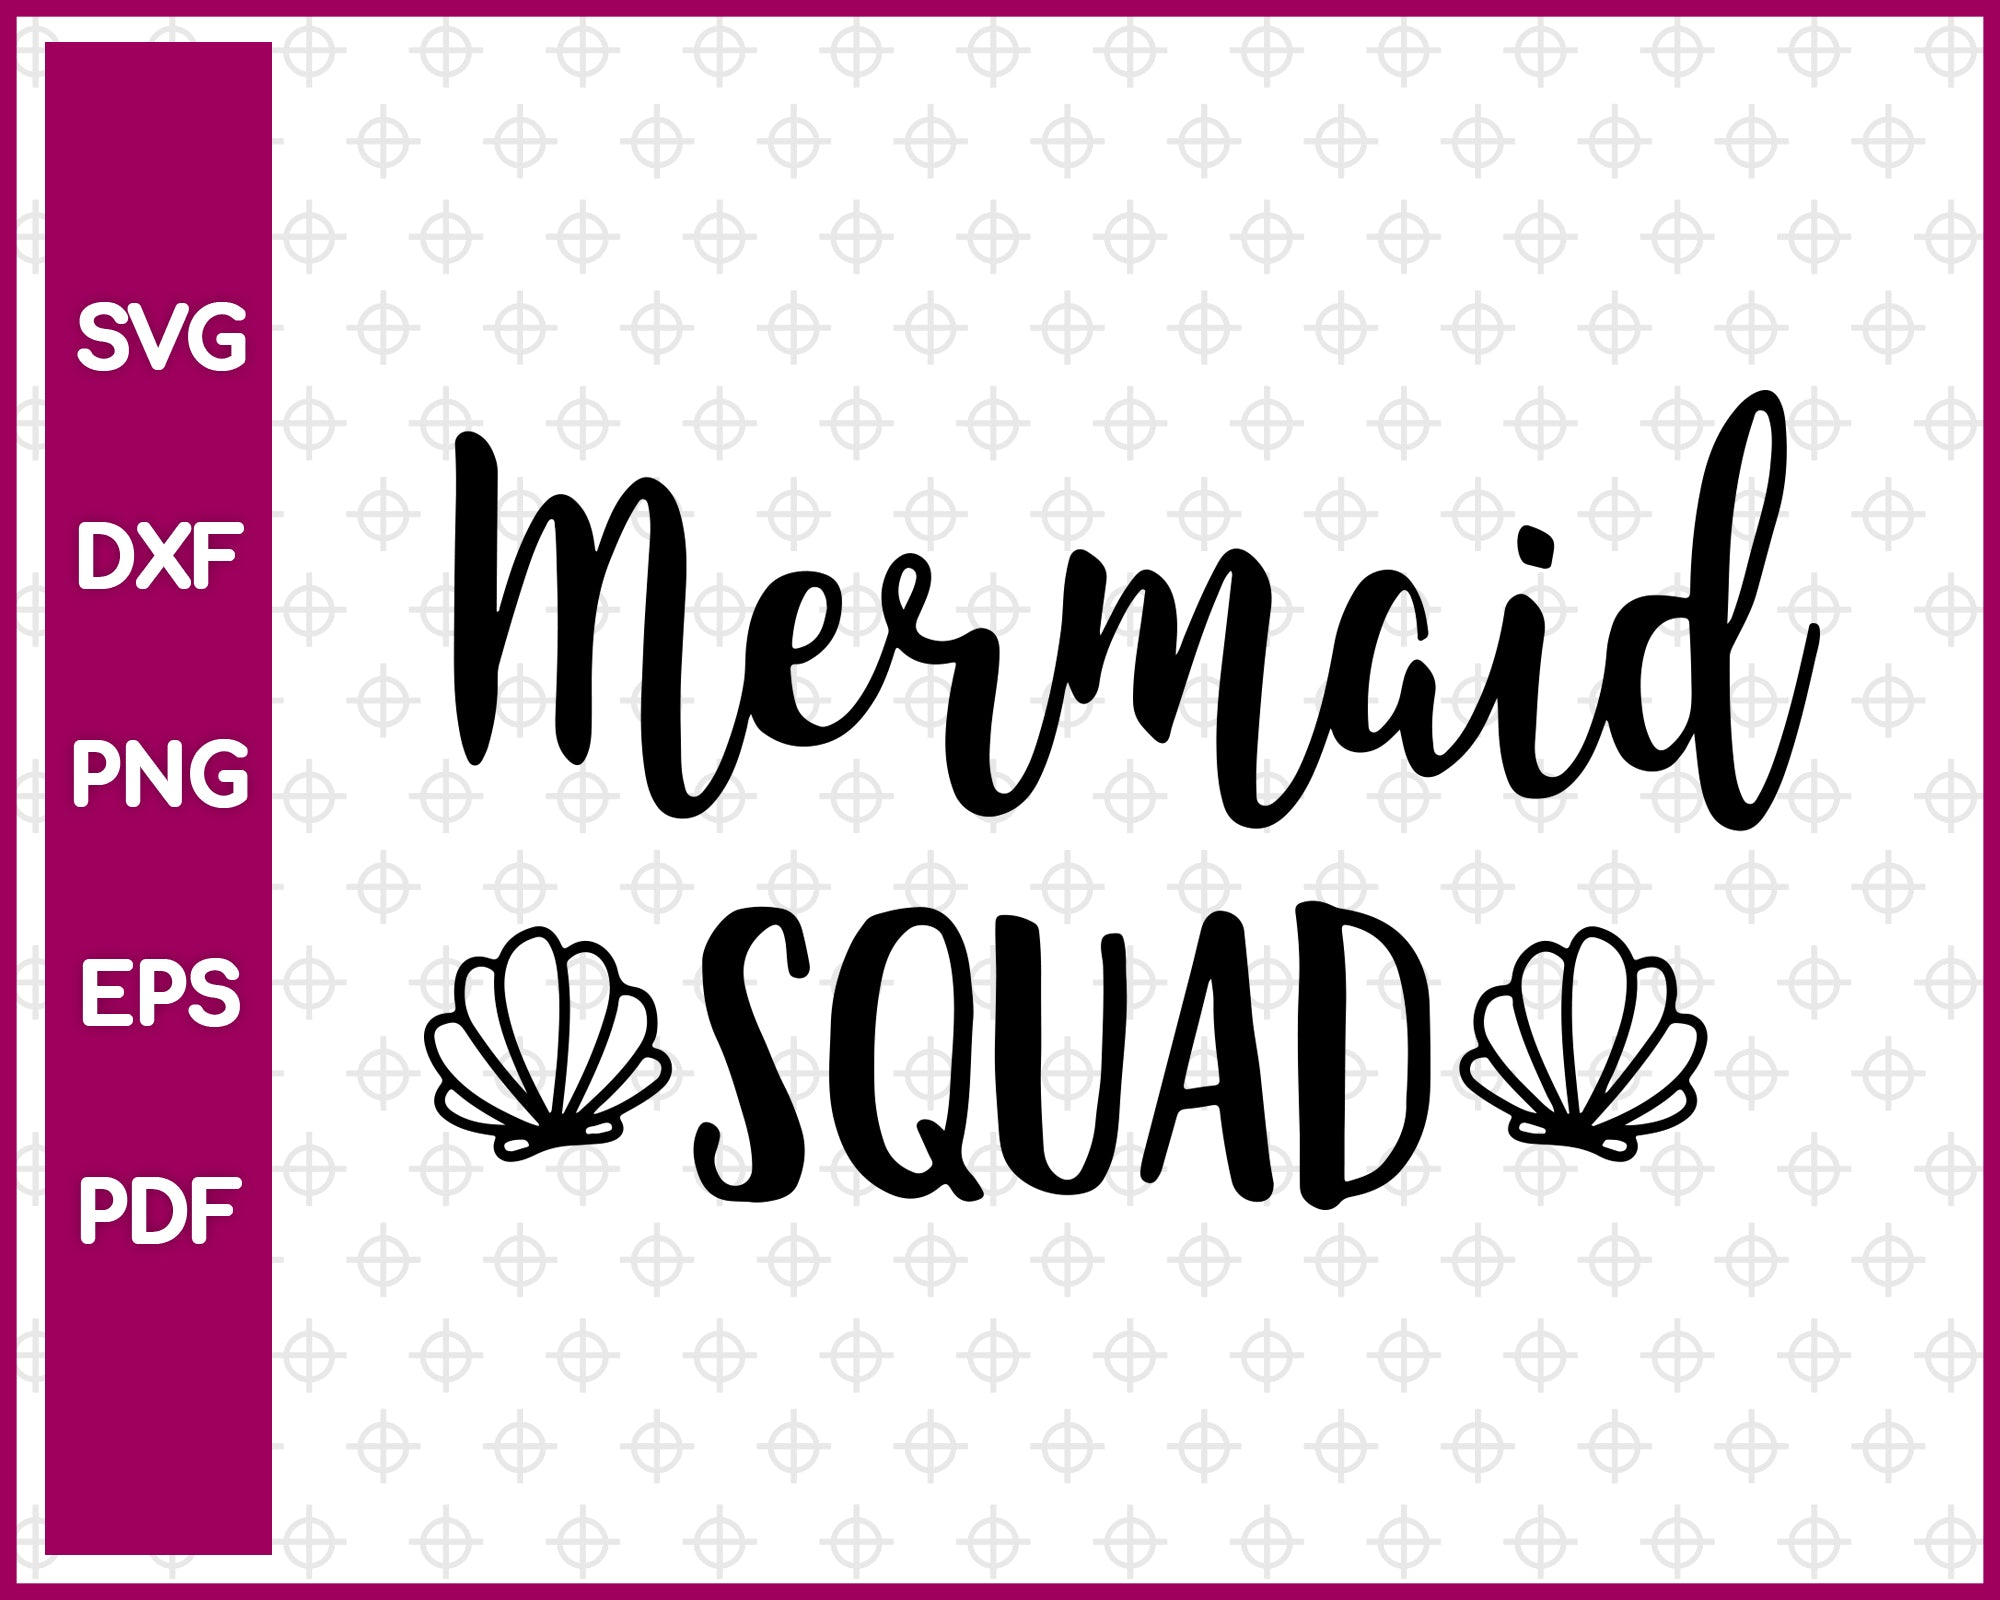 Mermaid Squad SVG, Summer SVG, Png, Eps, Dxf, Pdf Cricut, Cut Files, Silhouette Files, Download, Print